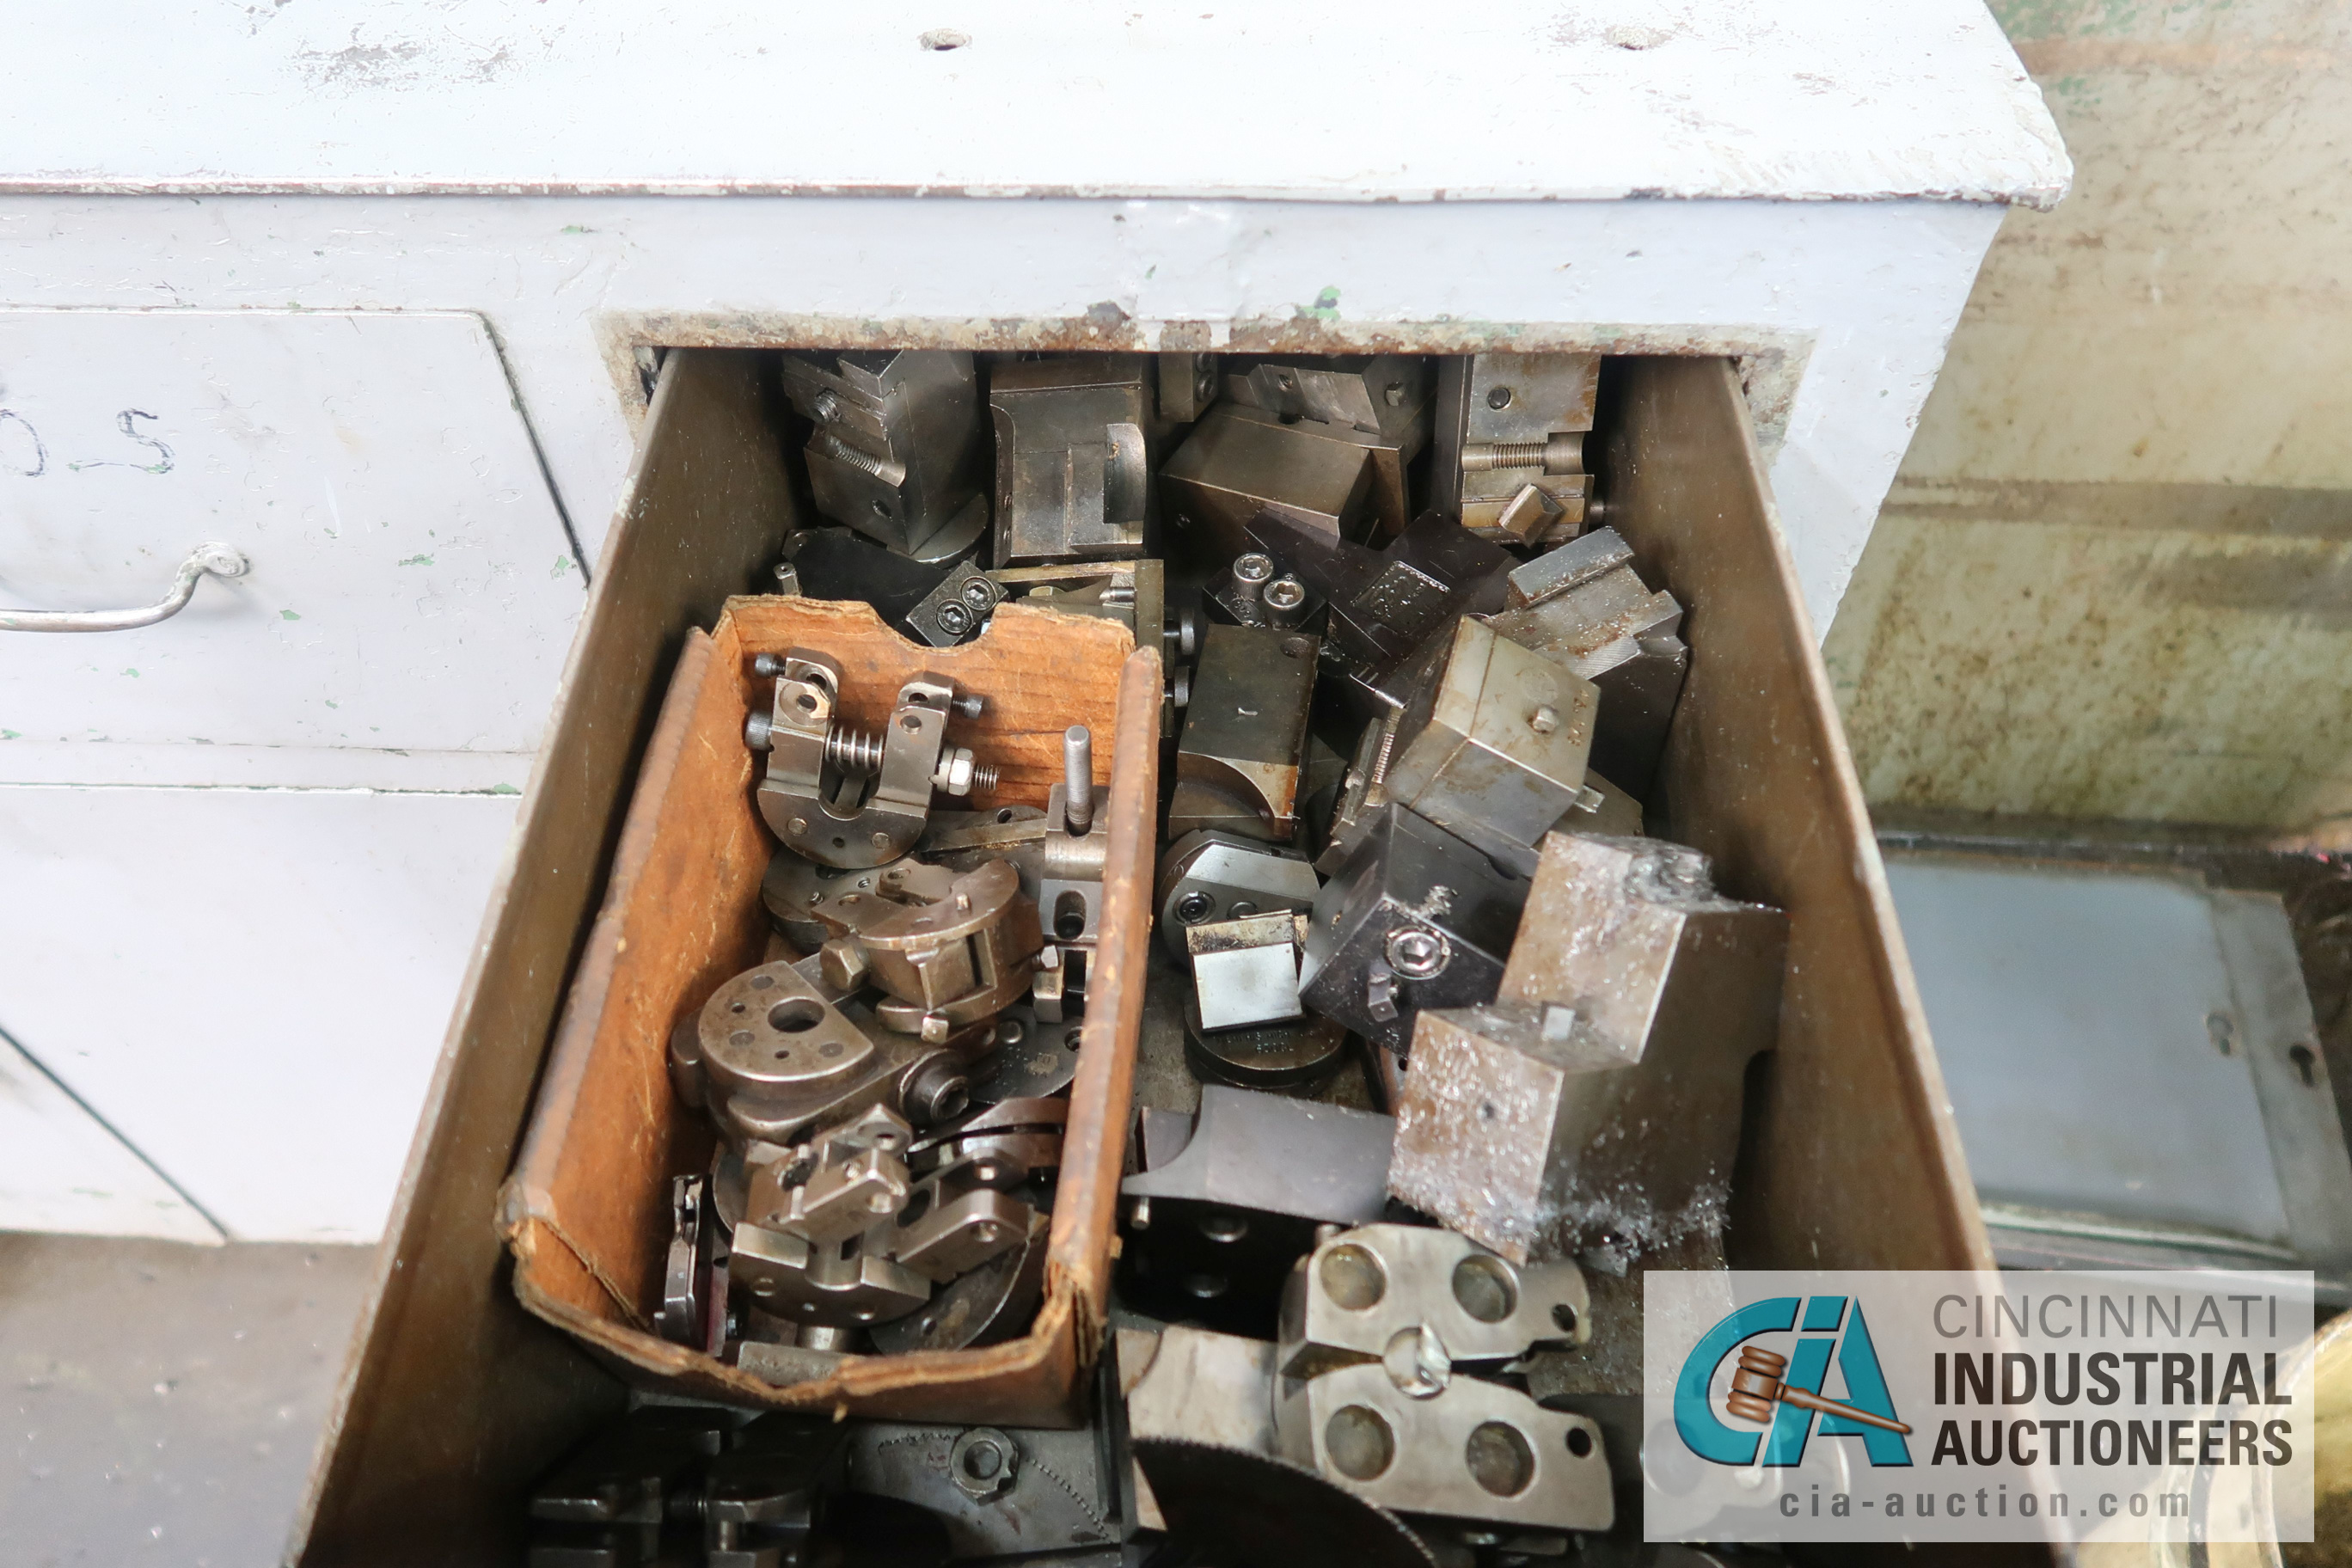 (LOT) LARGE ASSORTMENT MISCELLANEOUS DAVENPORT TOOLING, ATTACHMENTS, GEARS, CAMS AND OTHER RELATED - Image 17 of 21